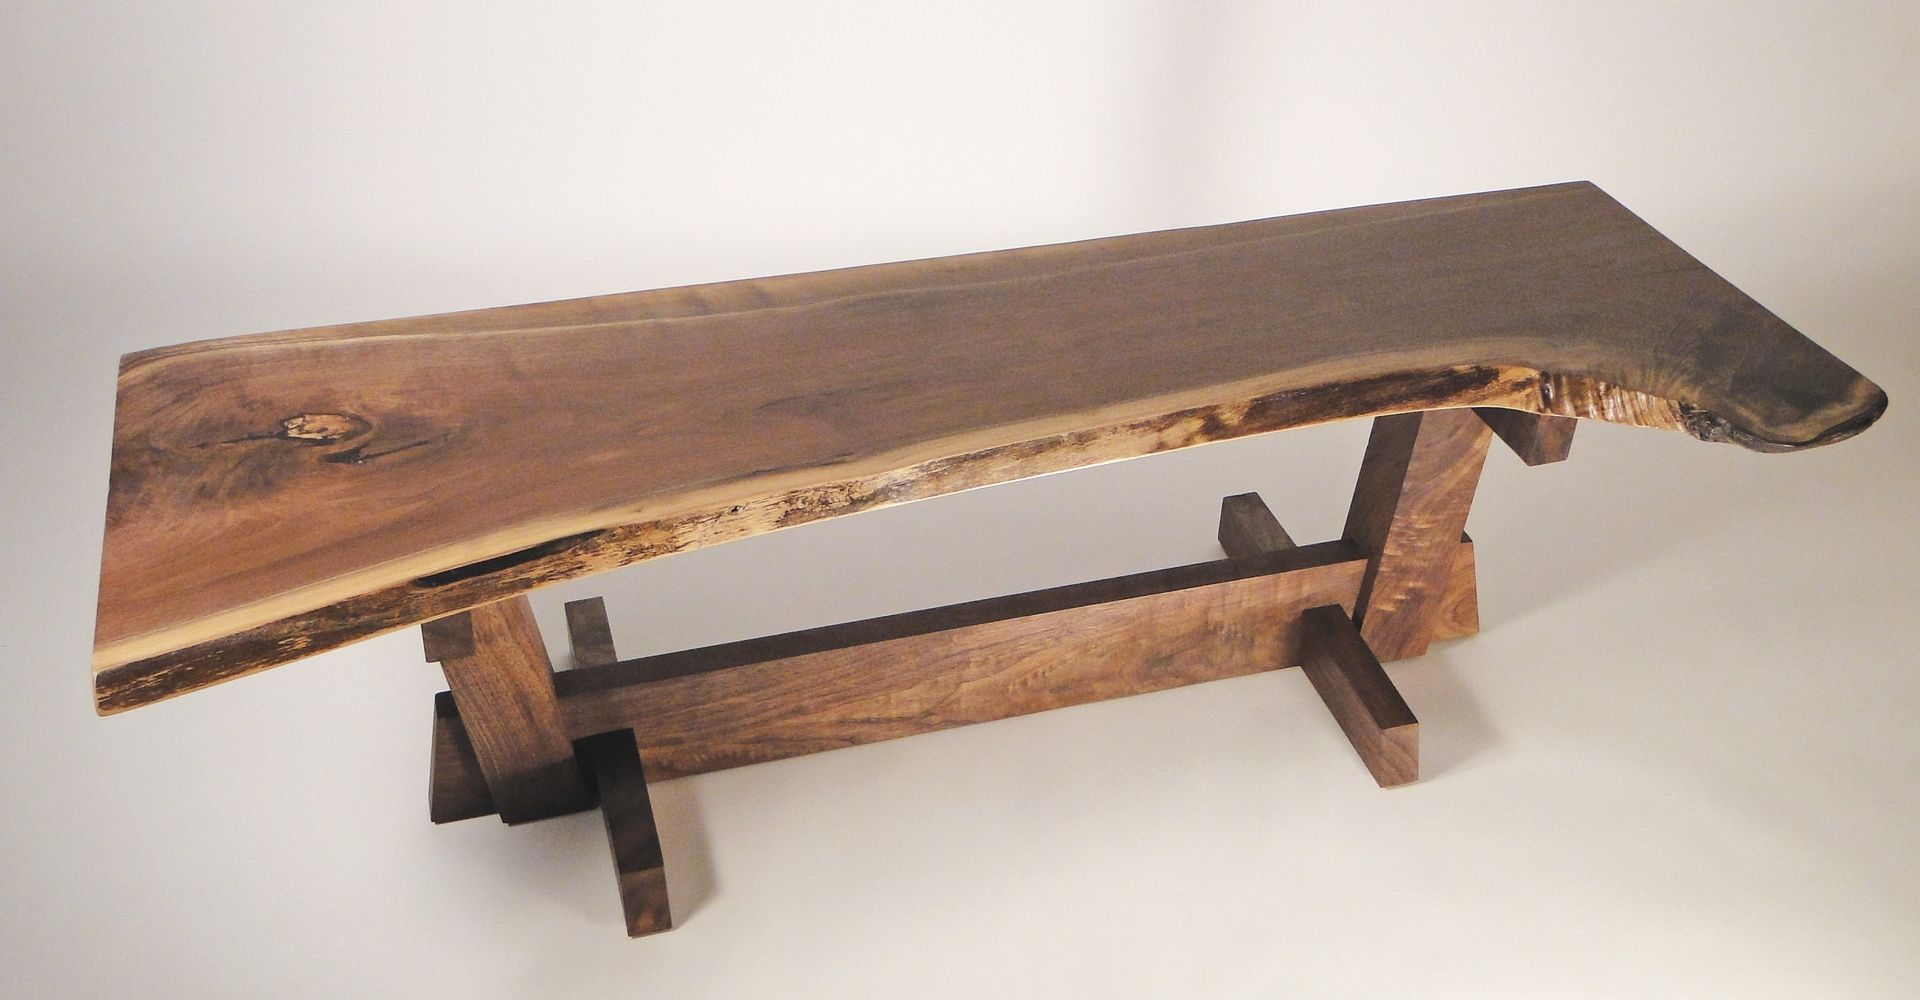 Handmade Nakashima Style Coffee Table Bench by The Wood Studio